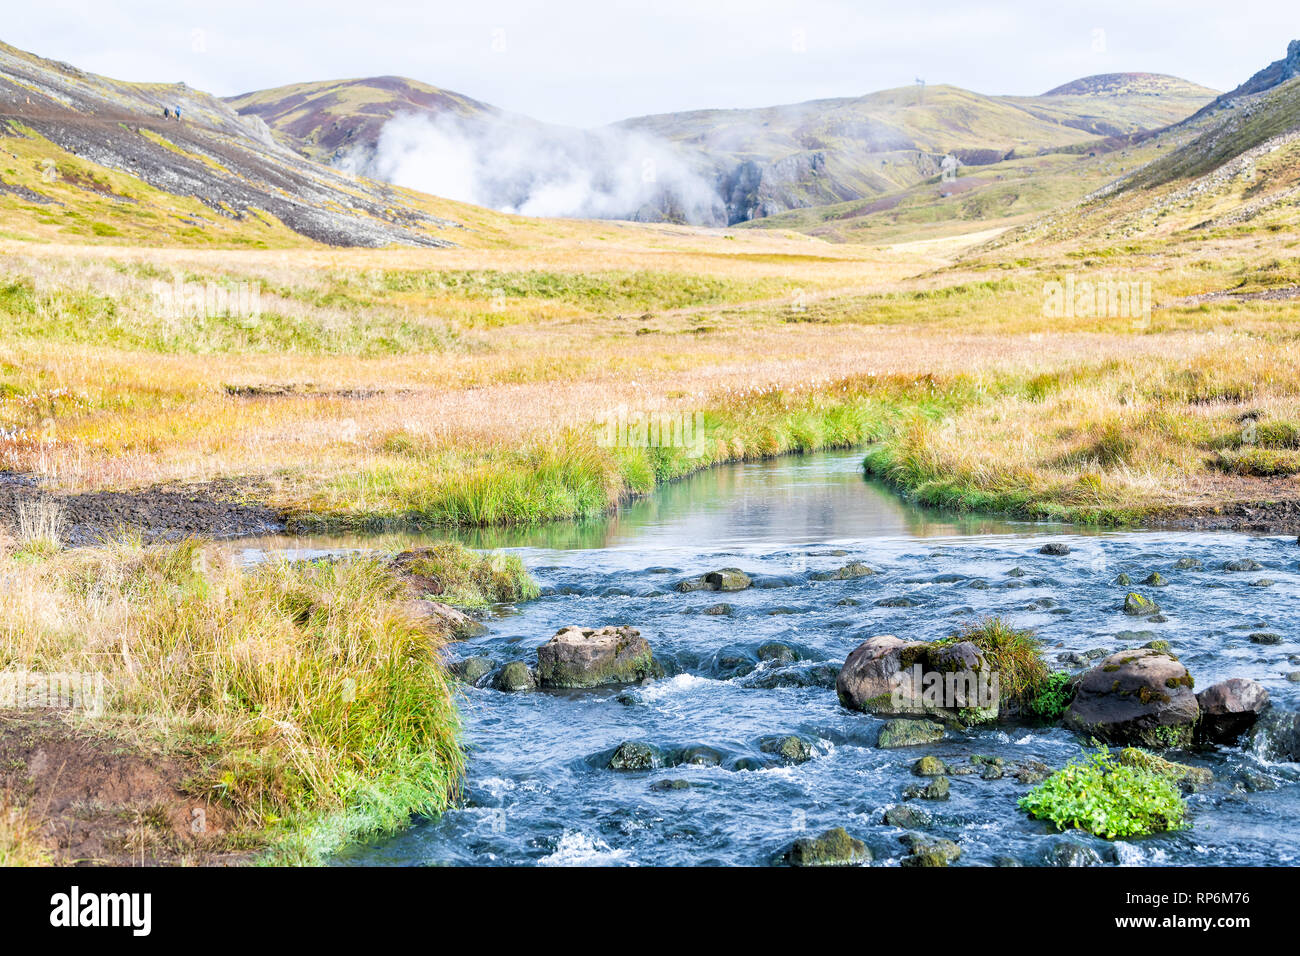 Hveragerdi Hot Springs river creek in Reykjadalur morning day in south Iceland golden circle with steam vent fumarole landscape and vapor mist - Stock Image